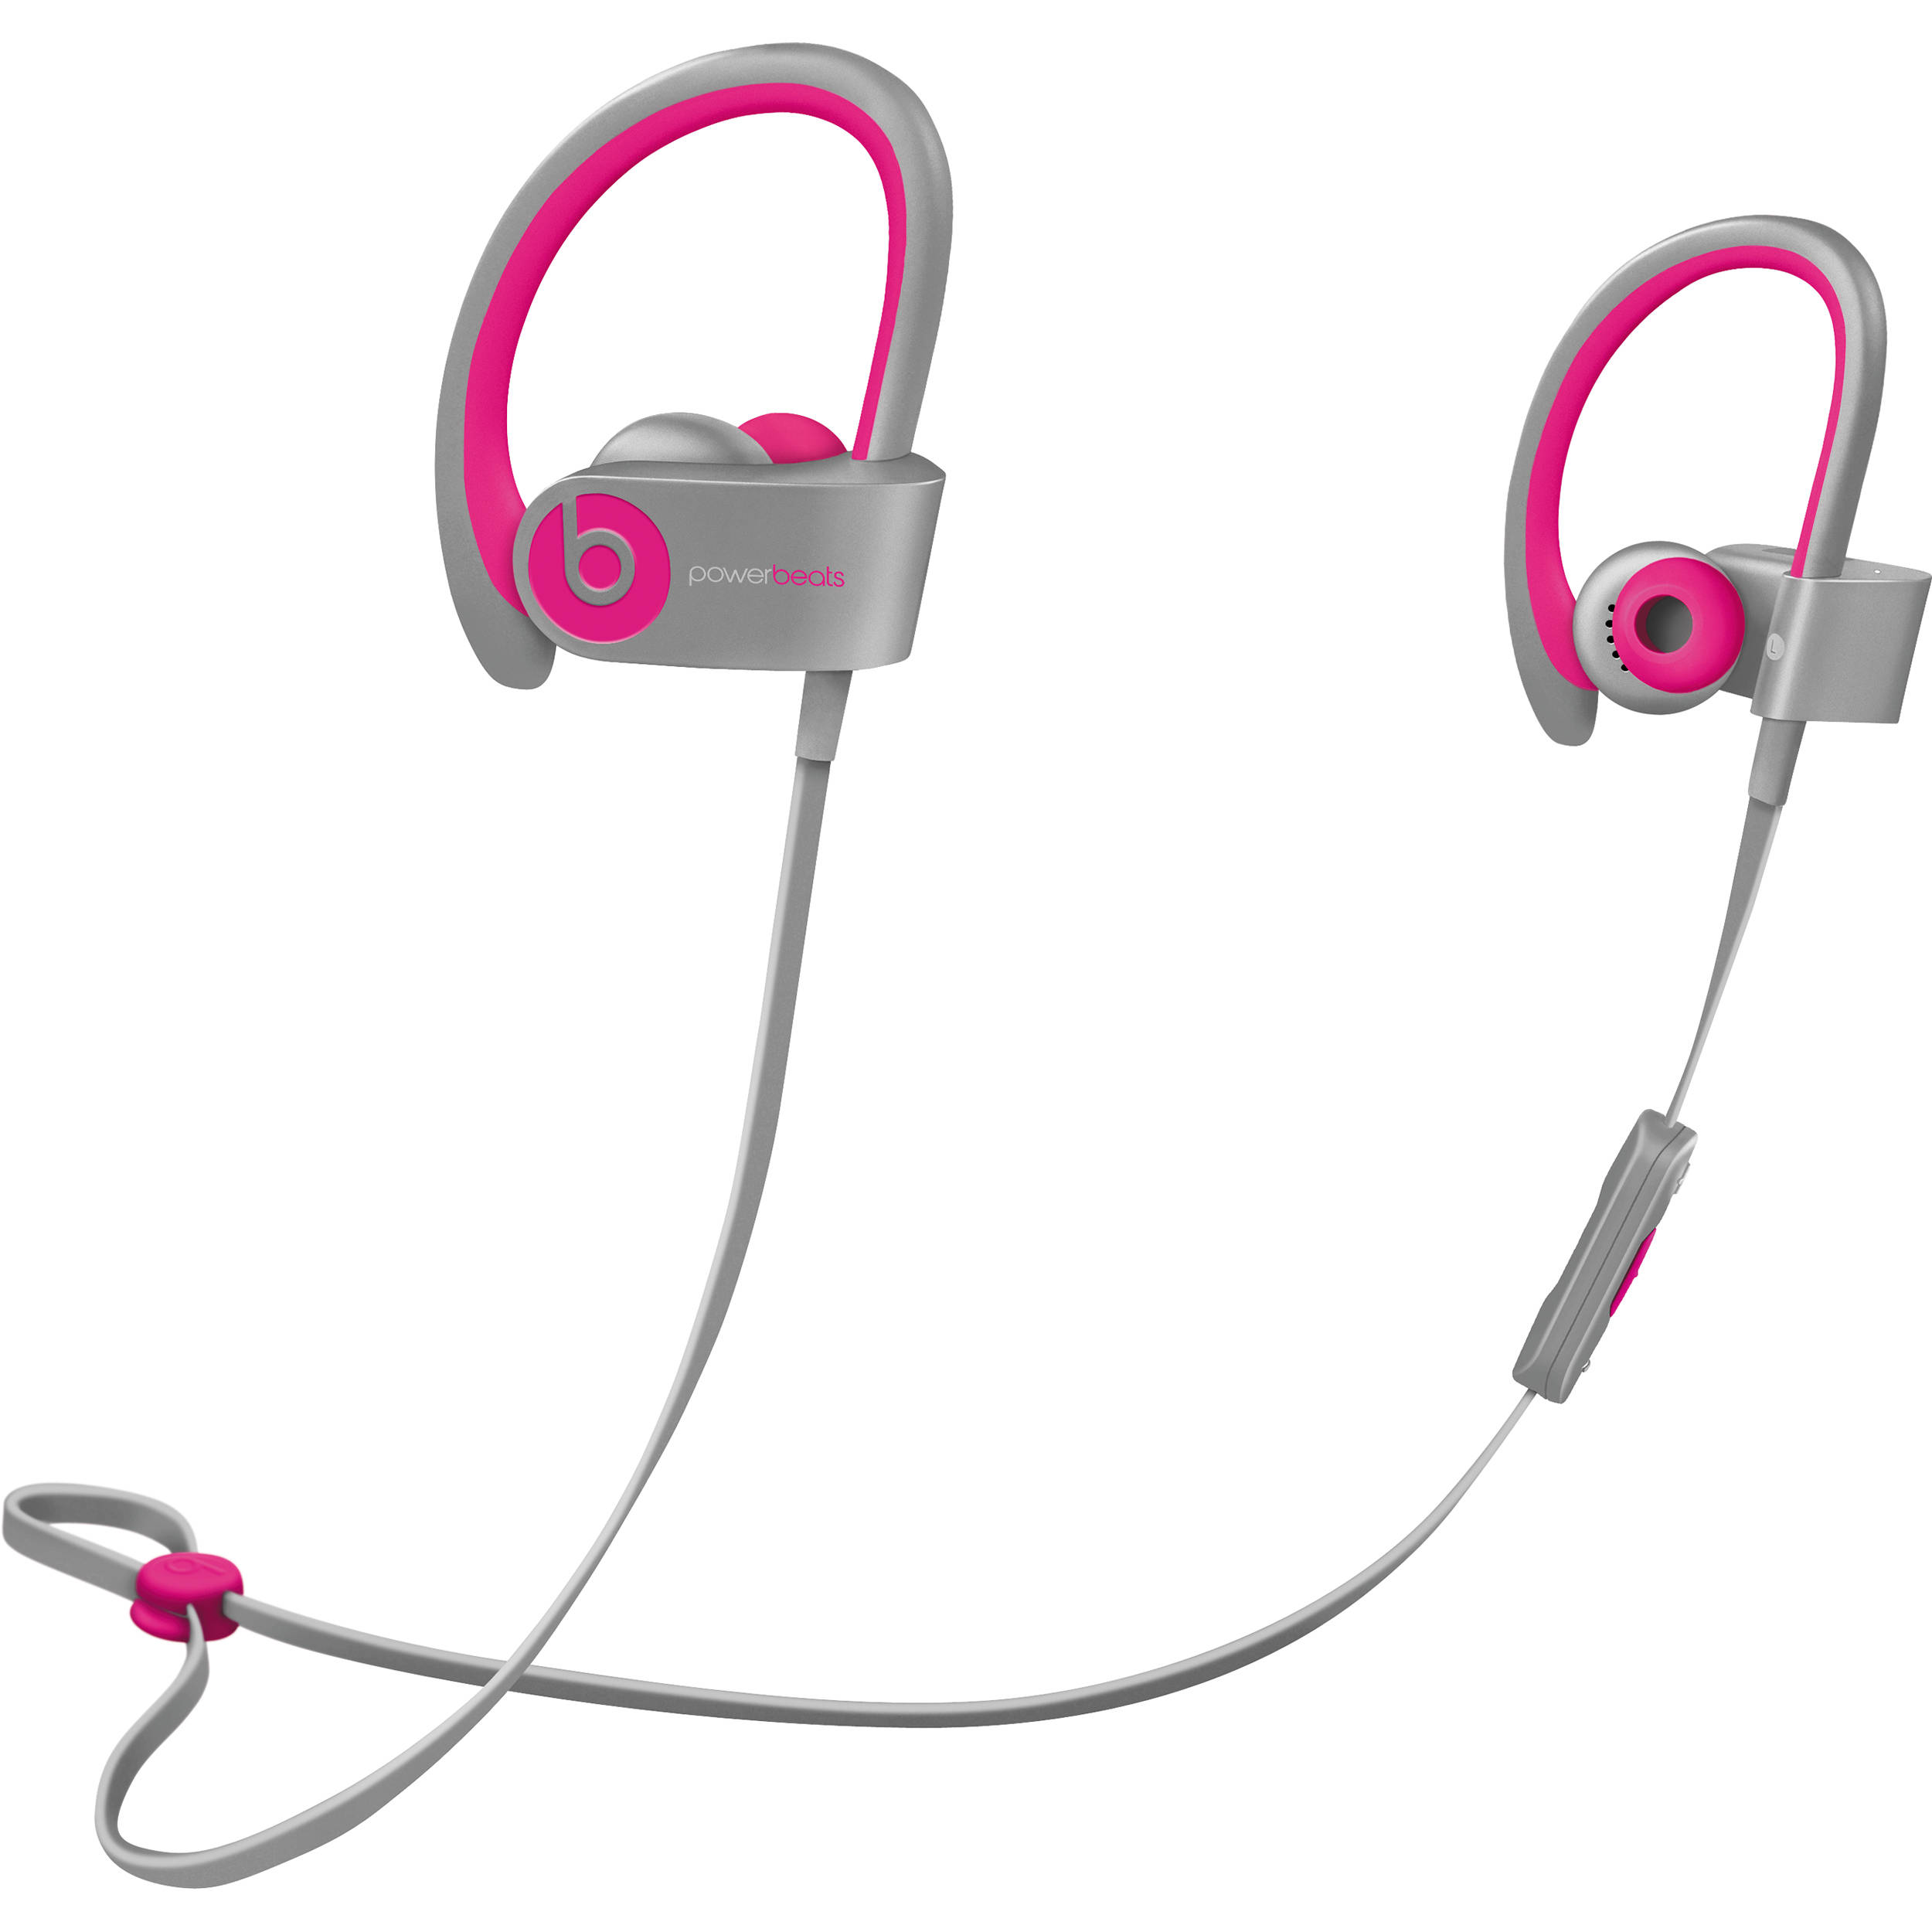 Beats by Dr  Dre Powerbeats2 Wireless Earbuds (Pink and Gray)